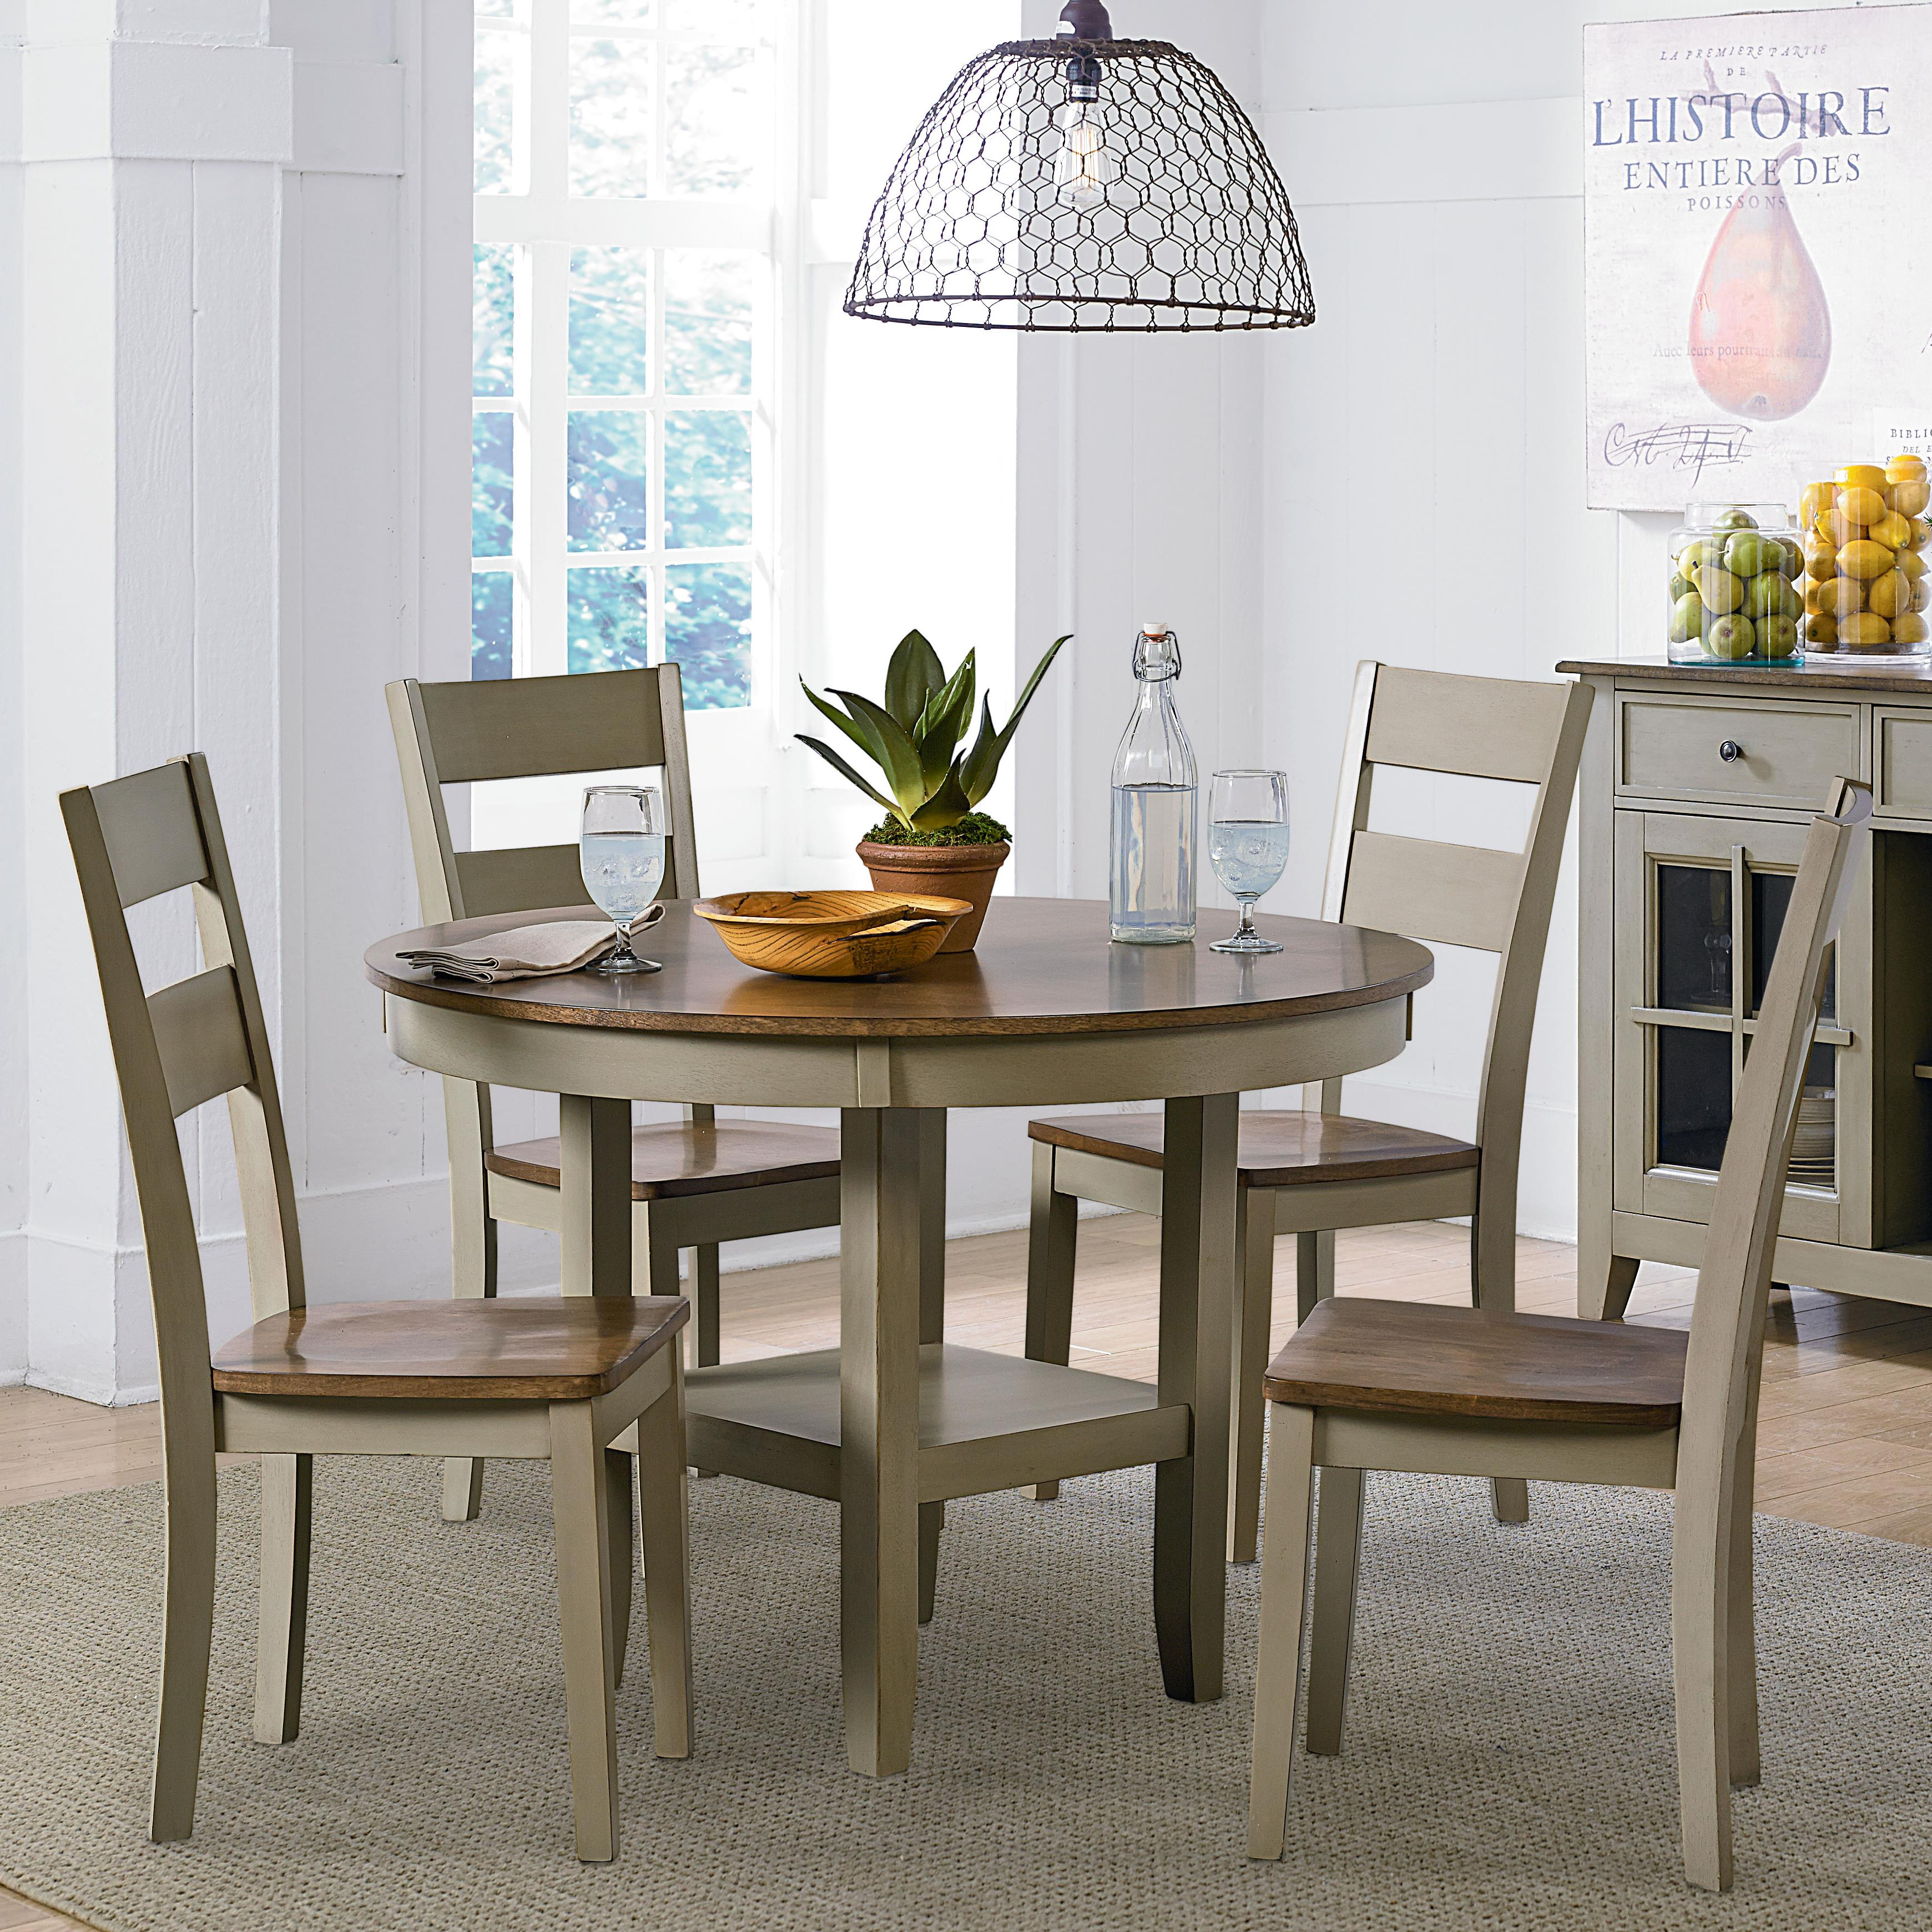 standard furniture pendwood sage casual kitchen table and chair